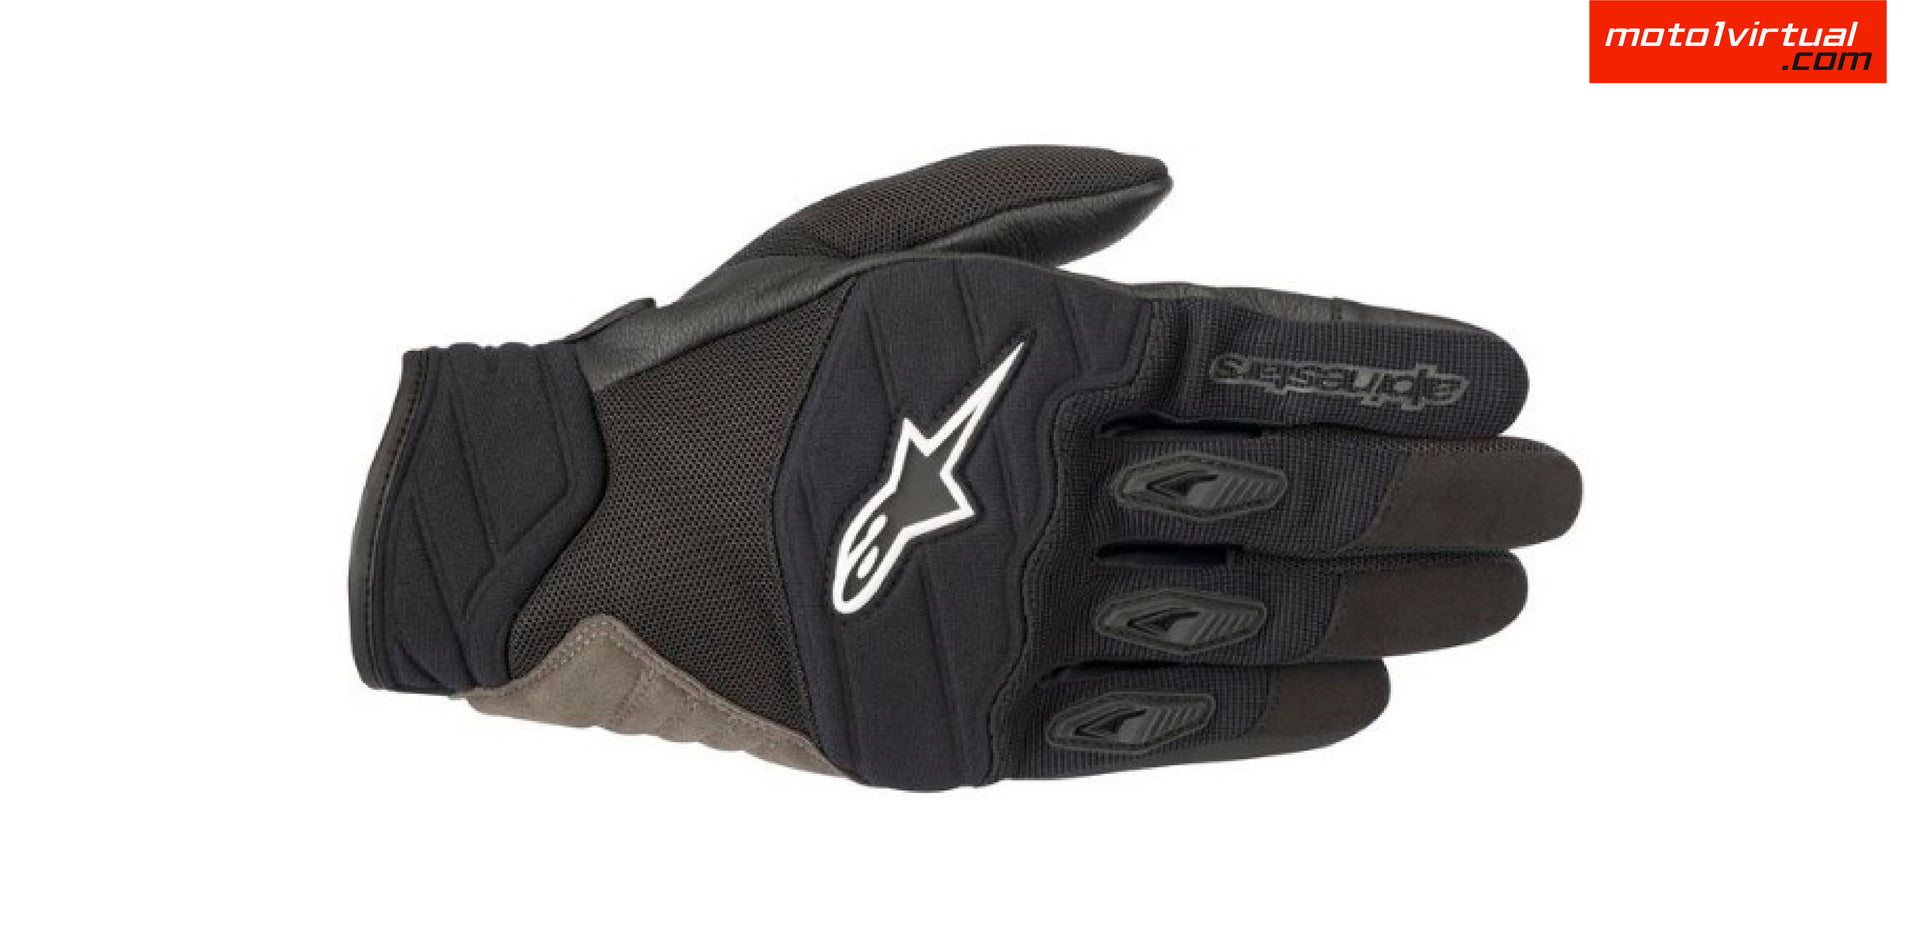 GUANTES BLACK SHORE - Motouno